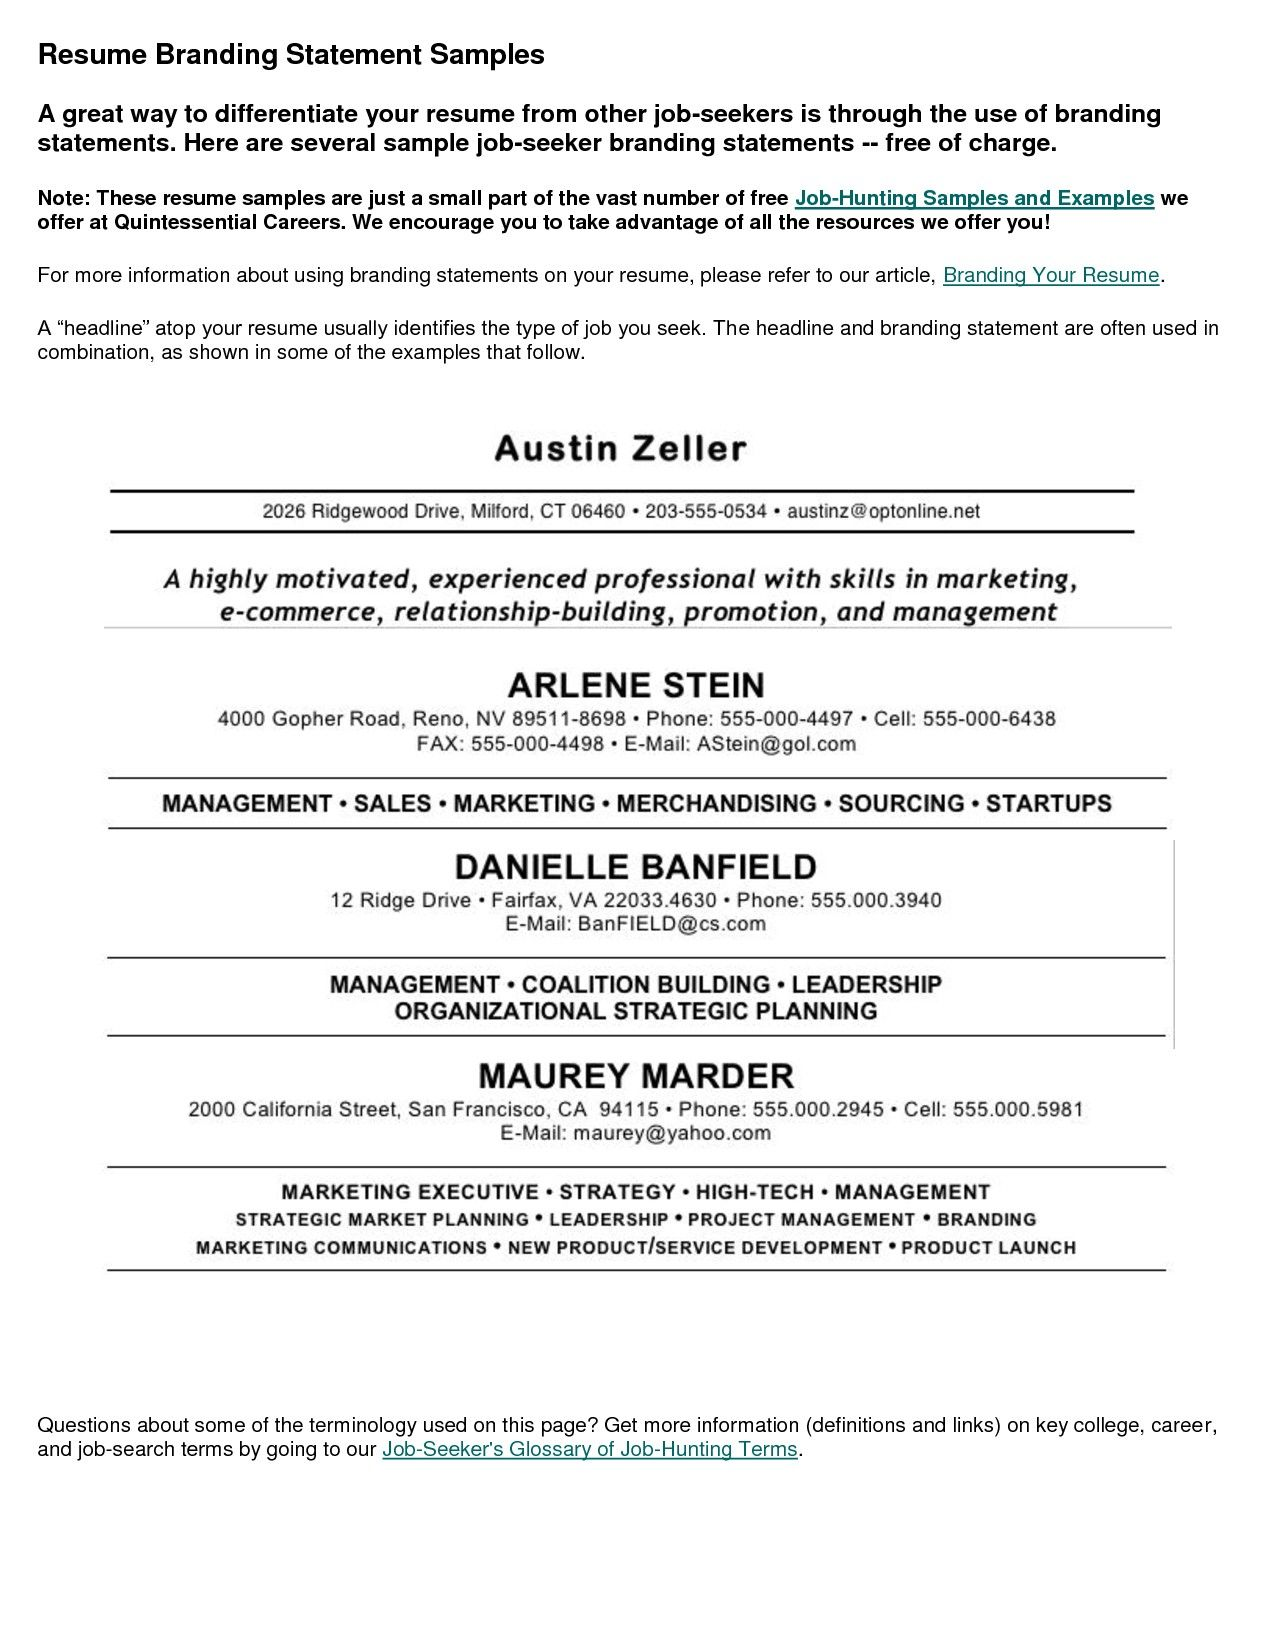 Beautiful Search Resume Free Free Resume Database For Recruiters For Branding Statement Resume